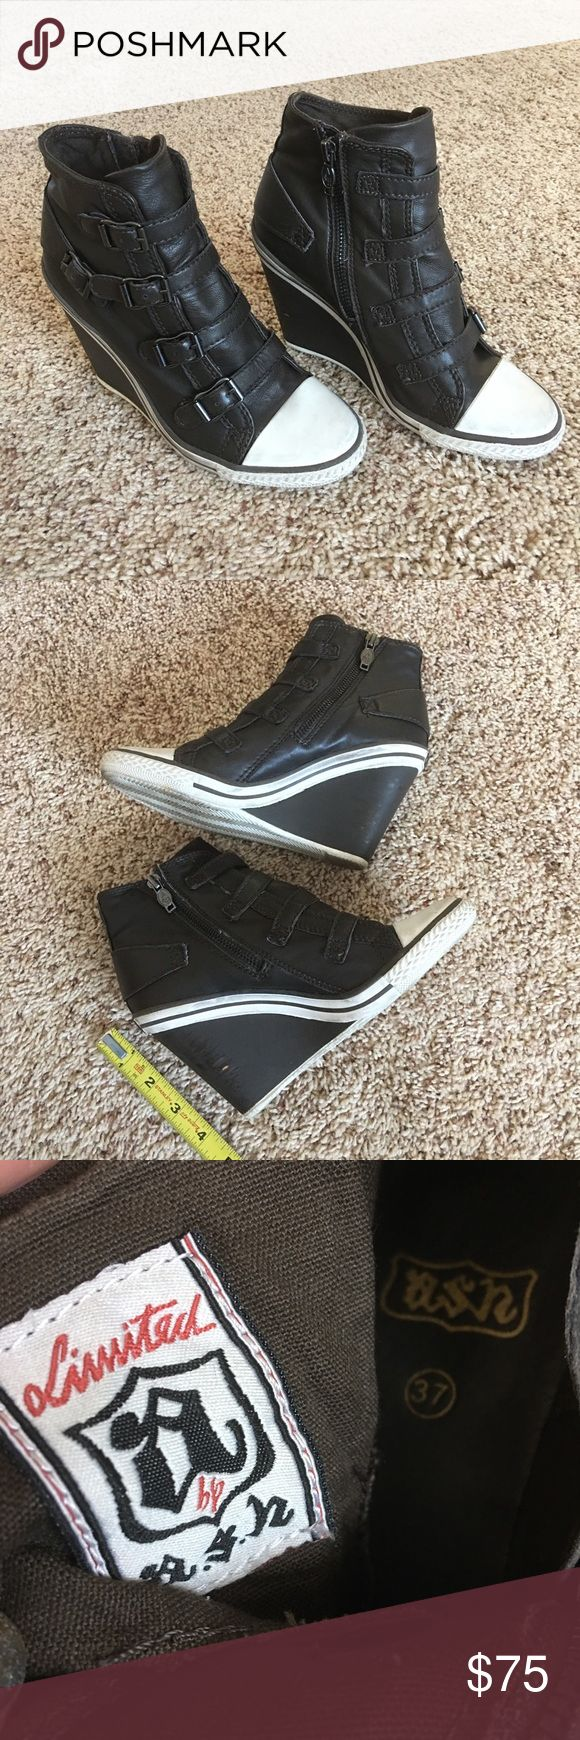 Authentic Ash Wedge Sneakers Authentic! Beautiful Ash wedge sneakers 💕 Size 37 and very comfortable! These are used with marks/scratches and in good condition. NO TRADE ❌ Ash Shoes